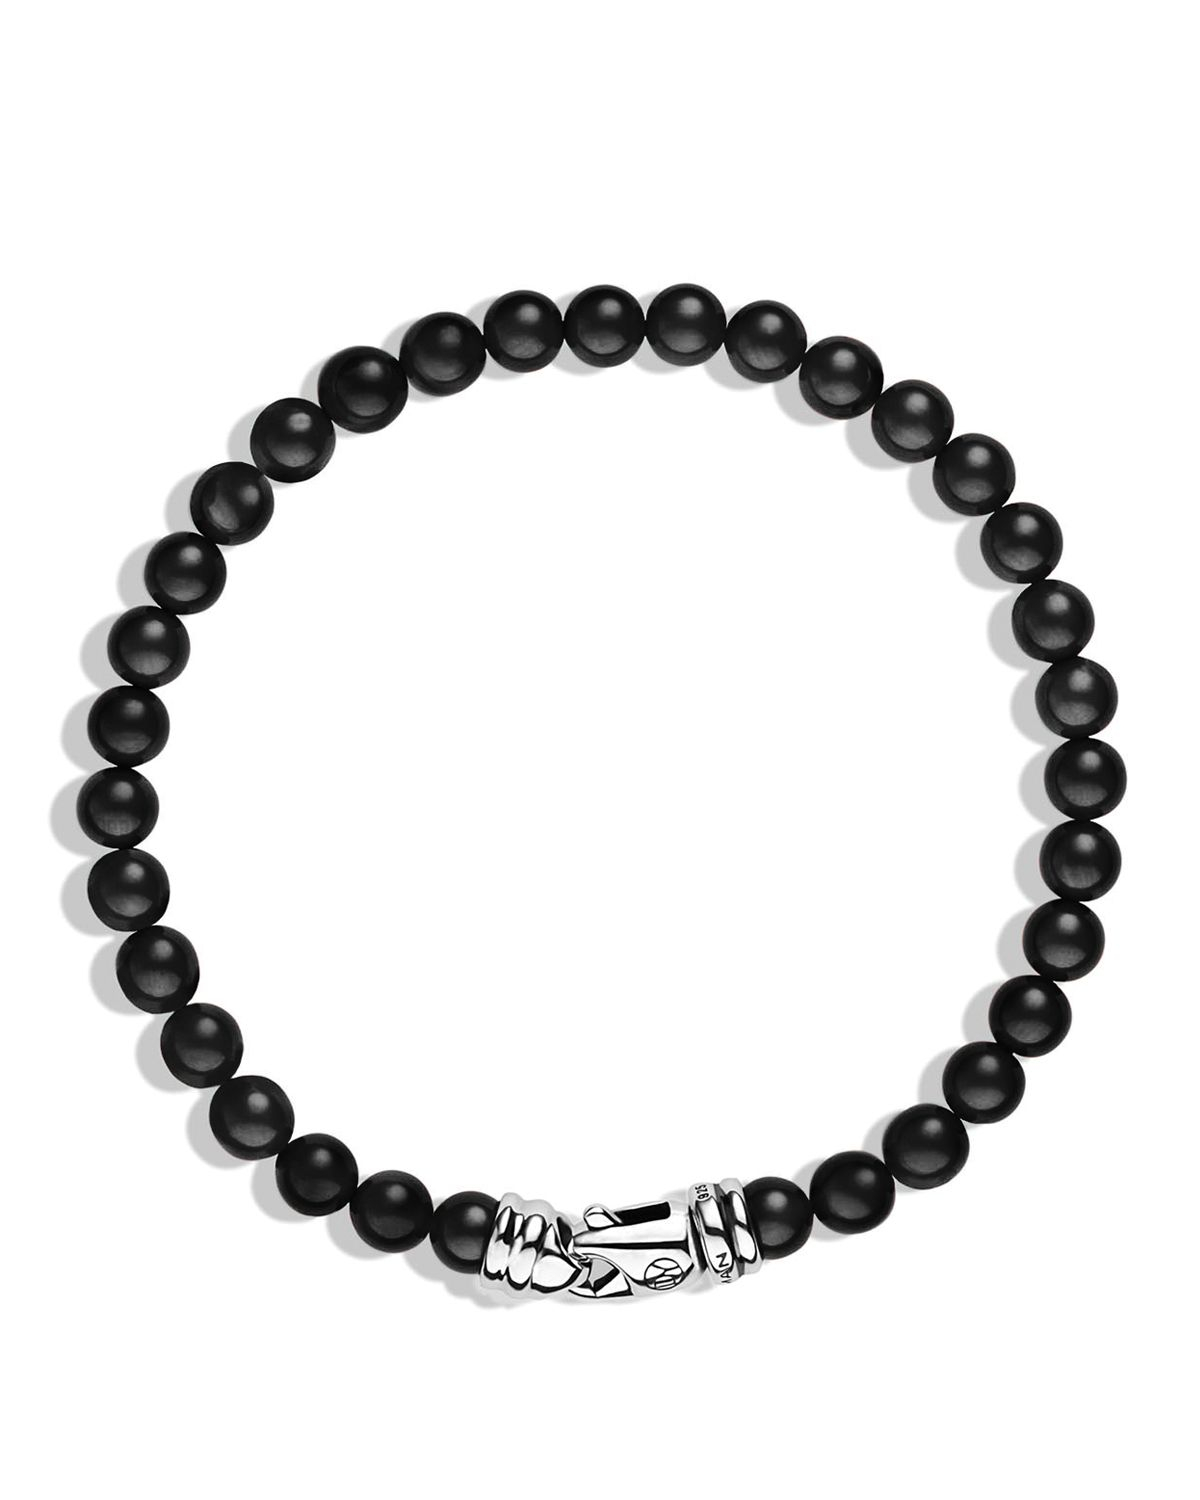 David Yurman Spiritual Beads Bracelet With Black Onyx In